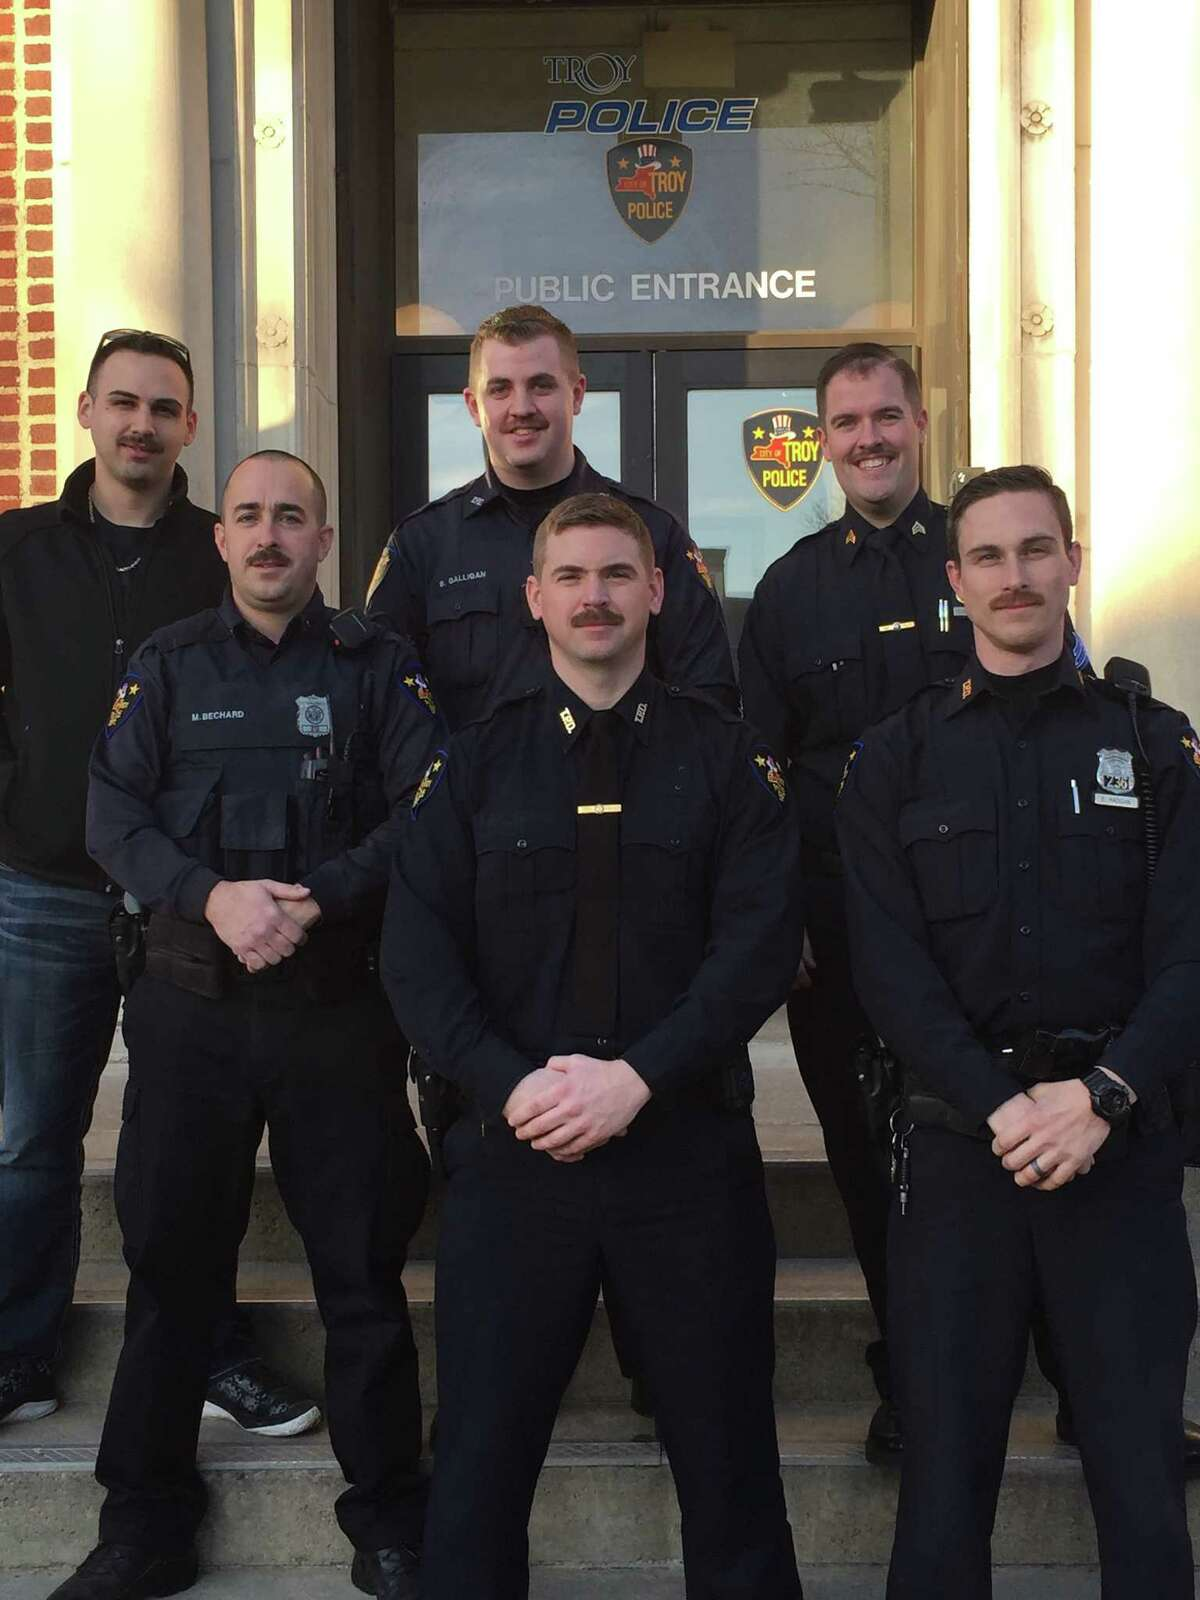 Six Troy police officers stand outside police headquarters sporting mustaches (well within department grooming policies) that they grew for a No Shave November effort to raise money for the Butler Foundation, which supports mesothelioma research. Standing from left in the back row are Officer Kevin Ray, Officer Brandon Galligan and Sgt. Steve Barker. Bottom row, from left, are officers Mike Bechard, Owen Conway and Eric Radigan. They raised $200 plus a match by the Troy Police Benevolent Association to give $400 to the foundation. (Photo provided)